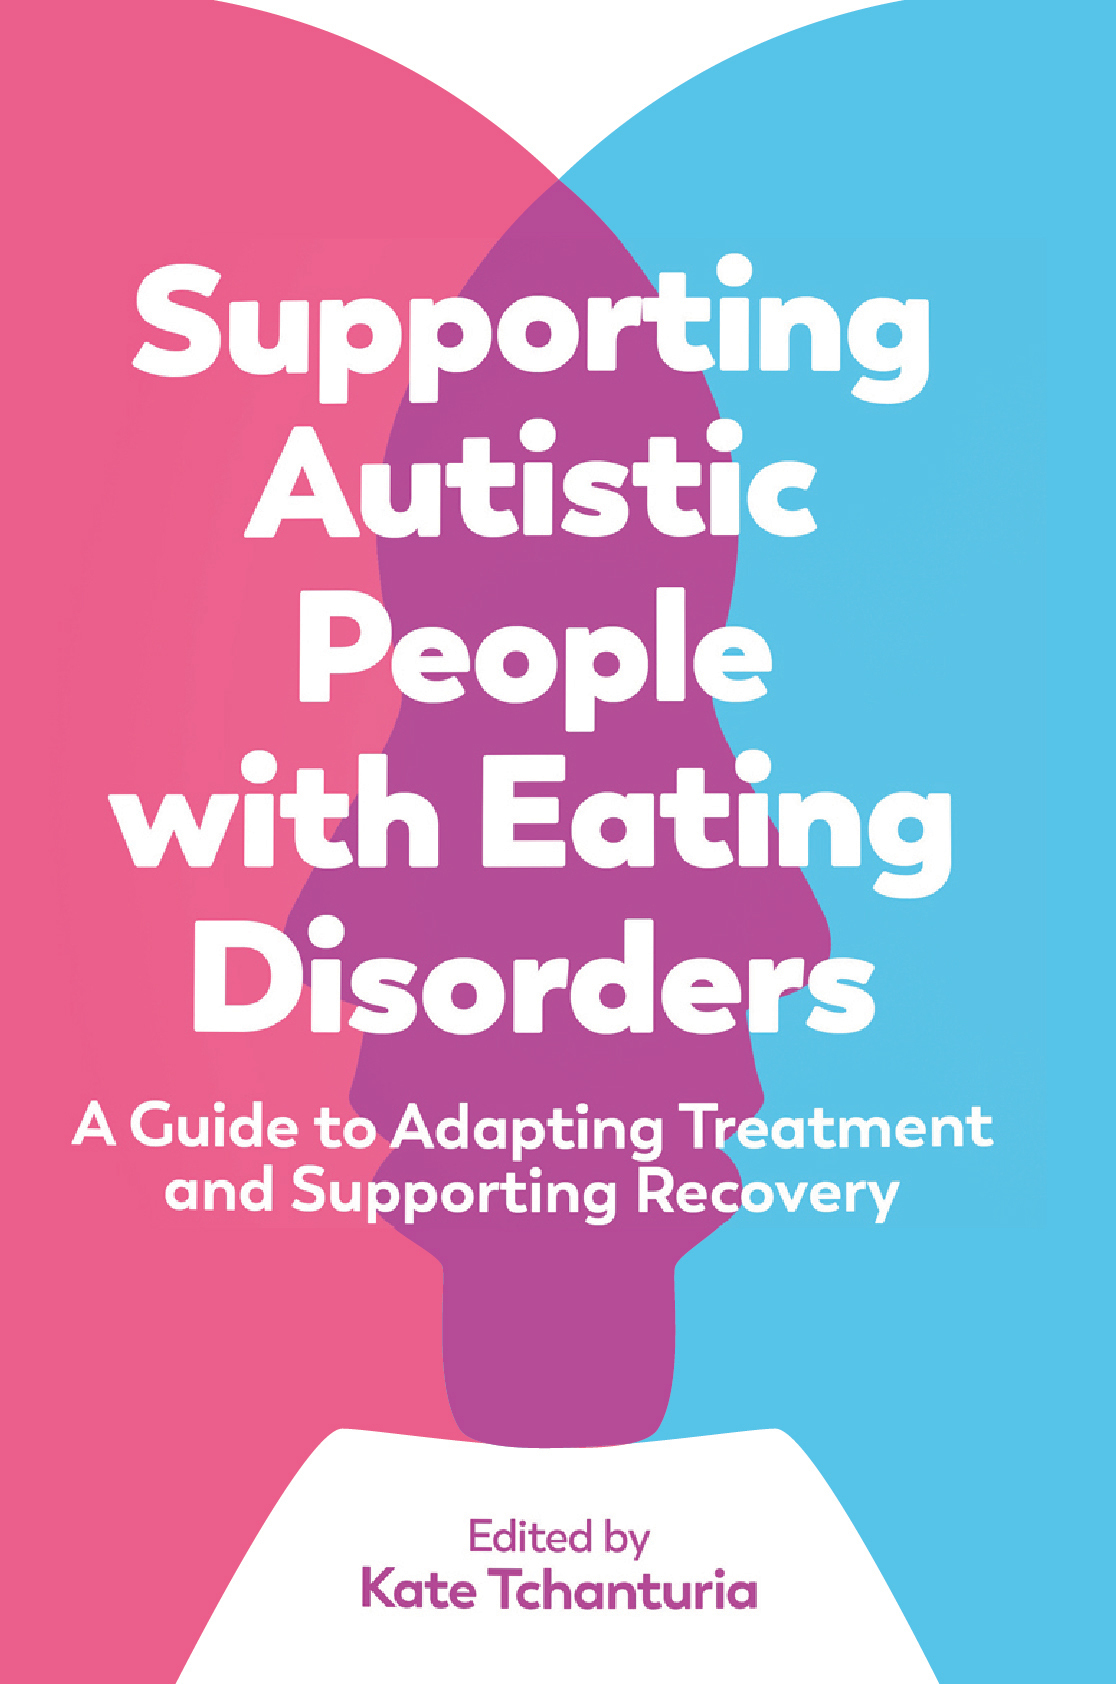 Supporting Autistic People with Eating Disorders - A guide to adapting treatment and supporting recovery